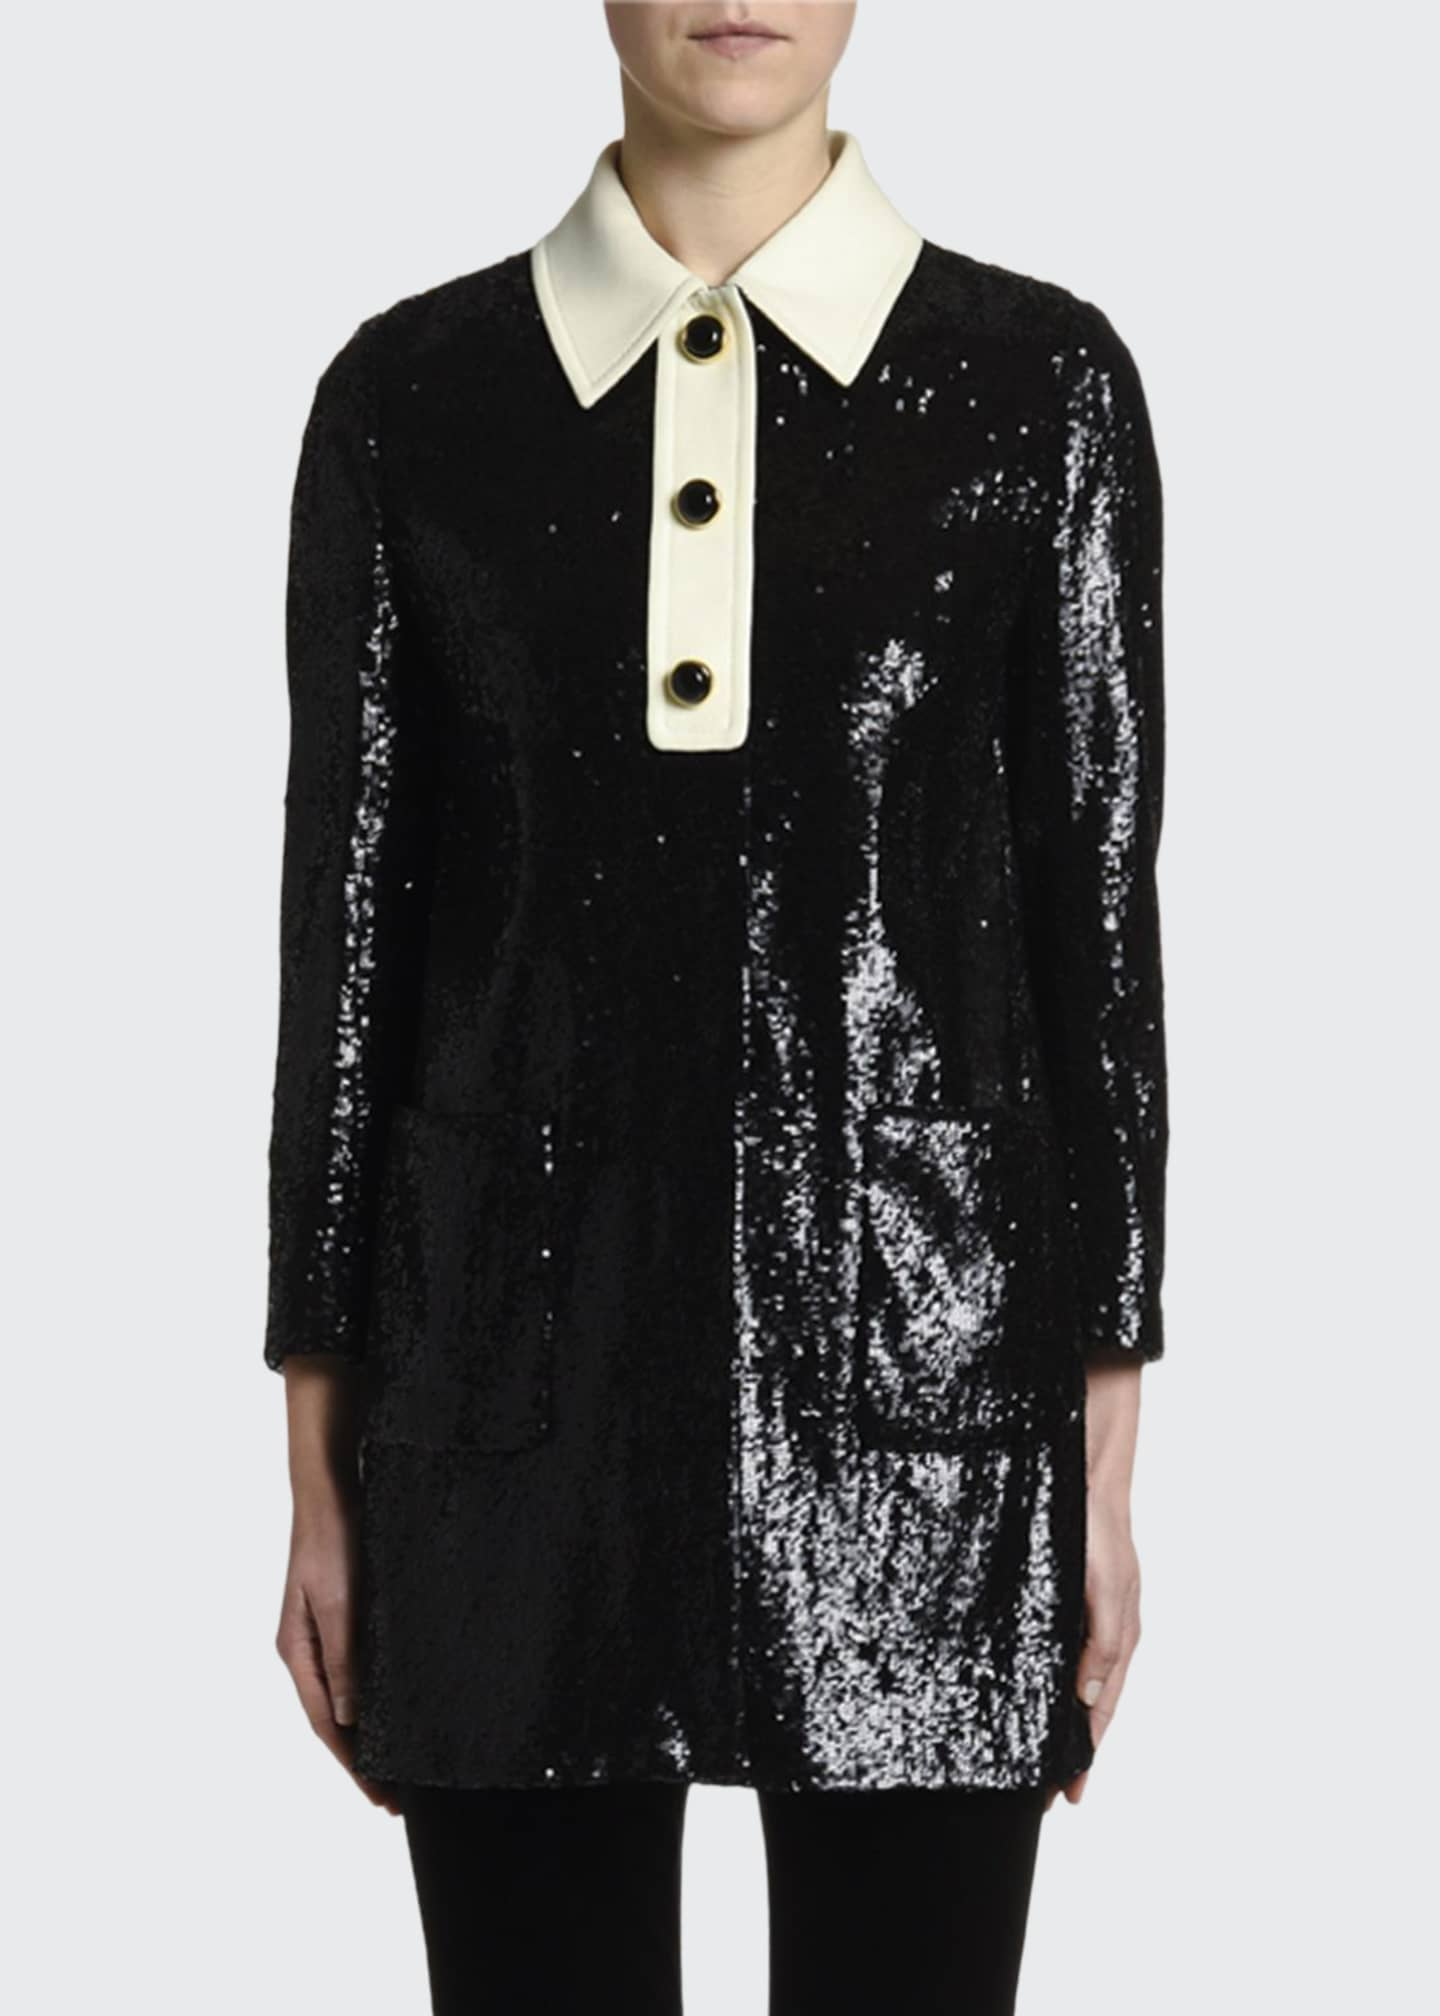 Miu Miu Sequined Long Jacket w/ Satin Collar